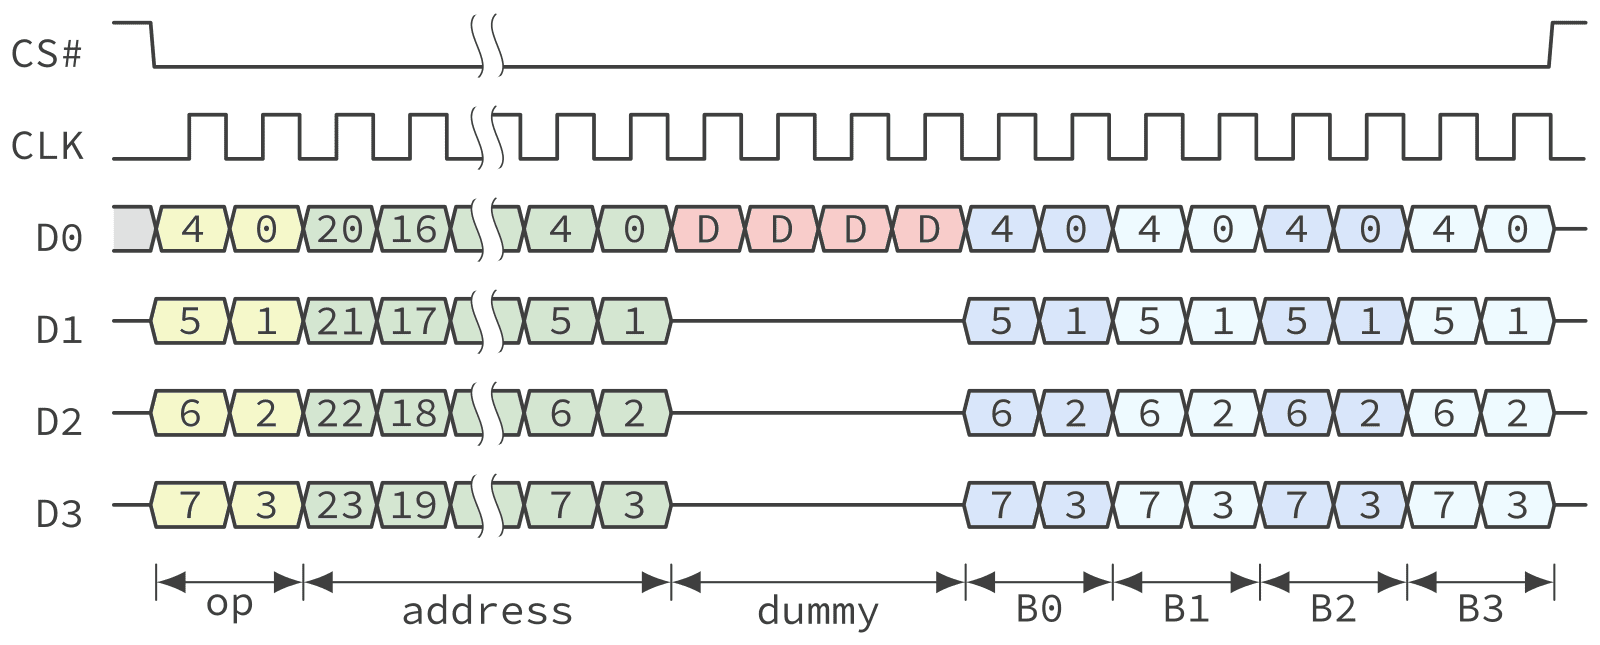 Timing diagram of a QSPI NOR Flash fast read operation in Quad Peripheral Interface mode.